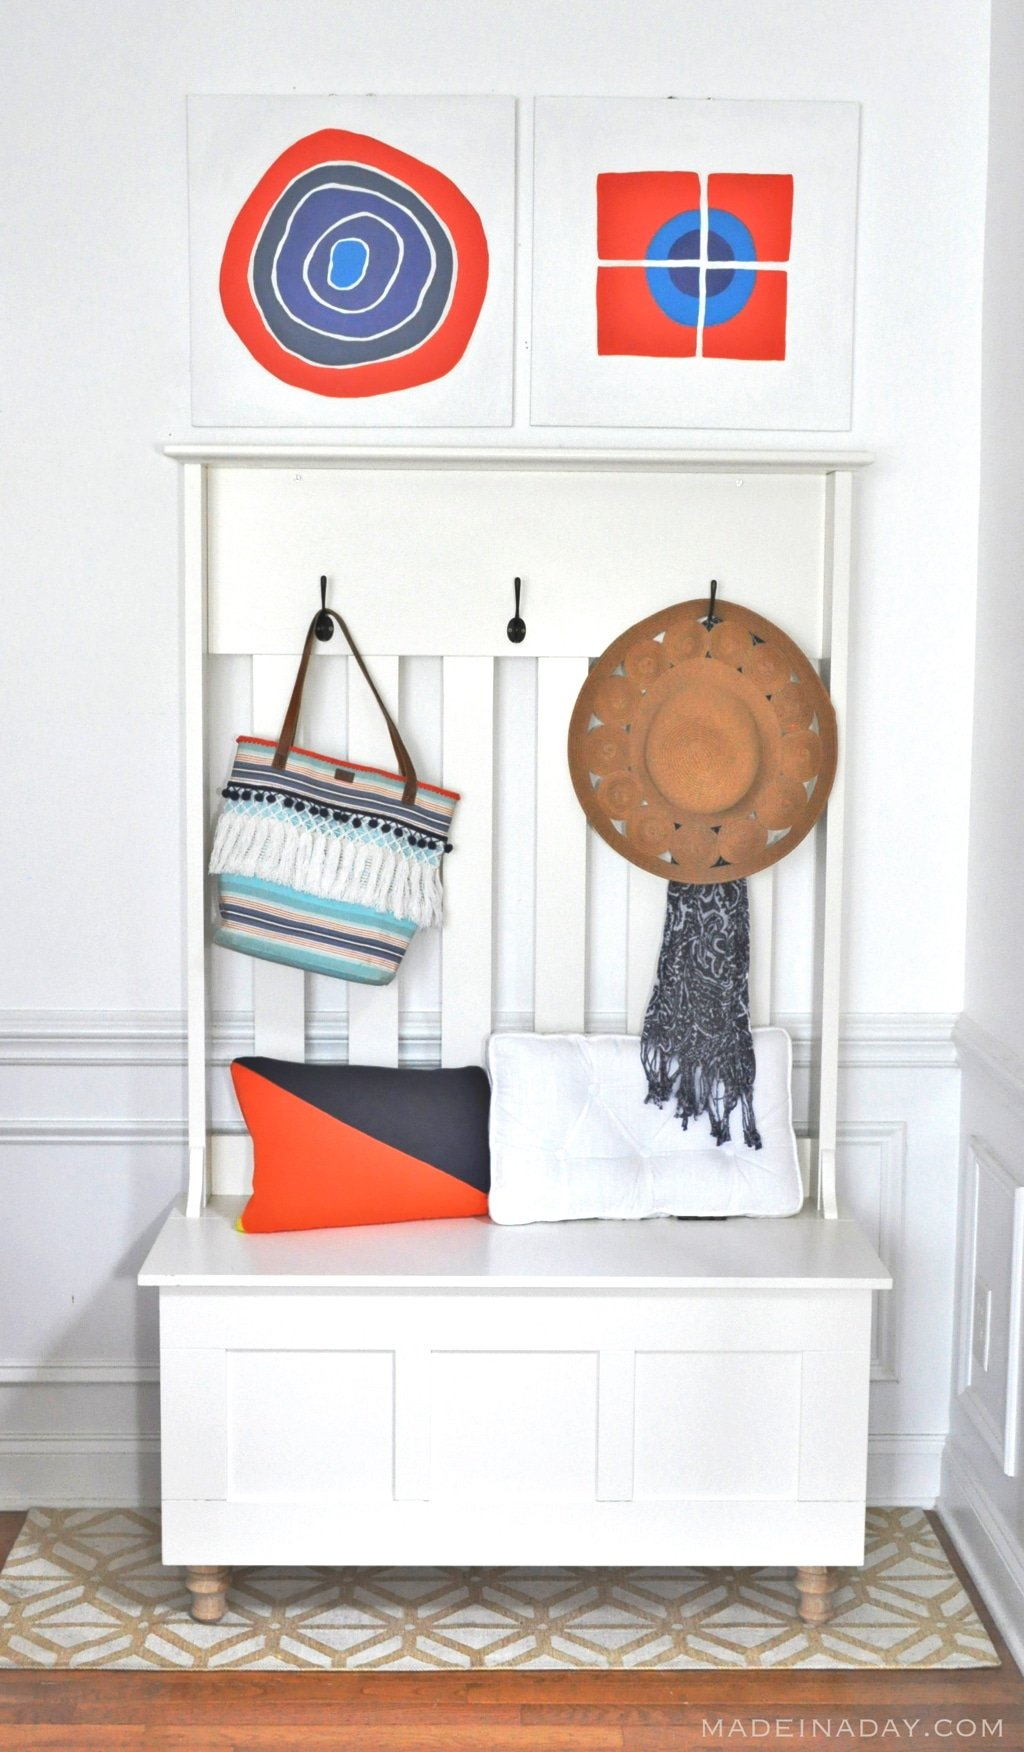 Orange Navy Wall Art Upcycle Makeover Made In A Day Home Decorators Catalog Best Ideas of Home Decor and Design [homedecoratorscatalog.us]